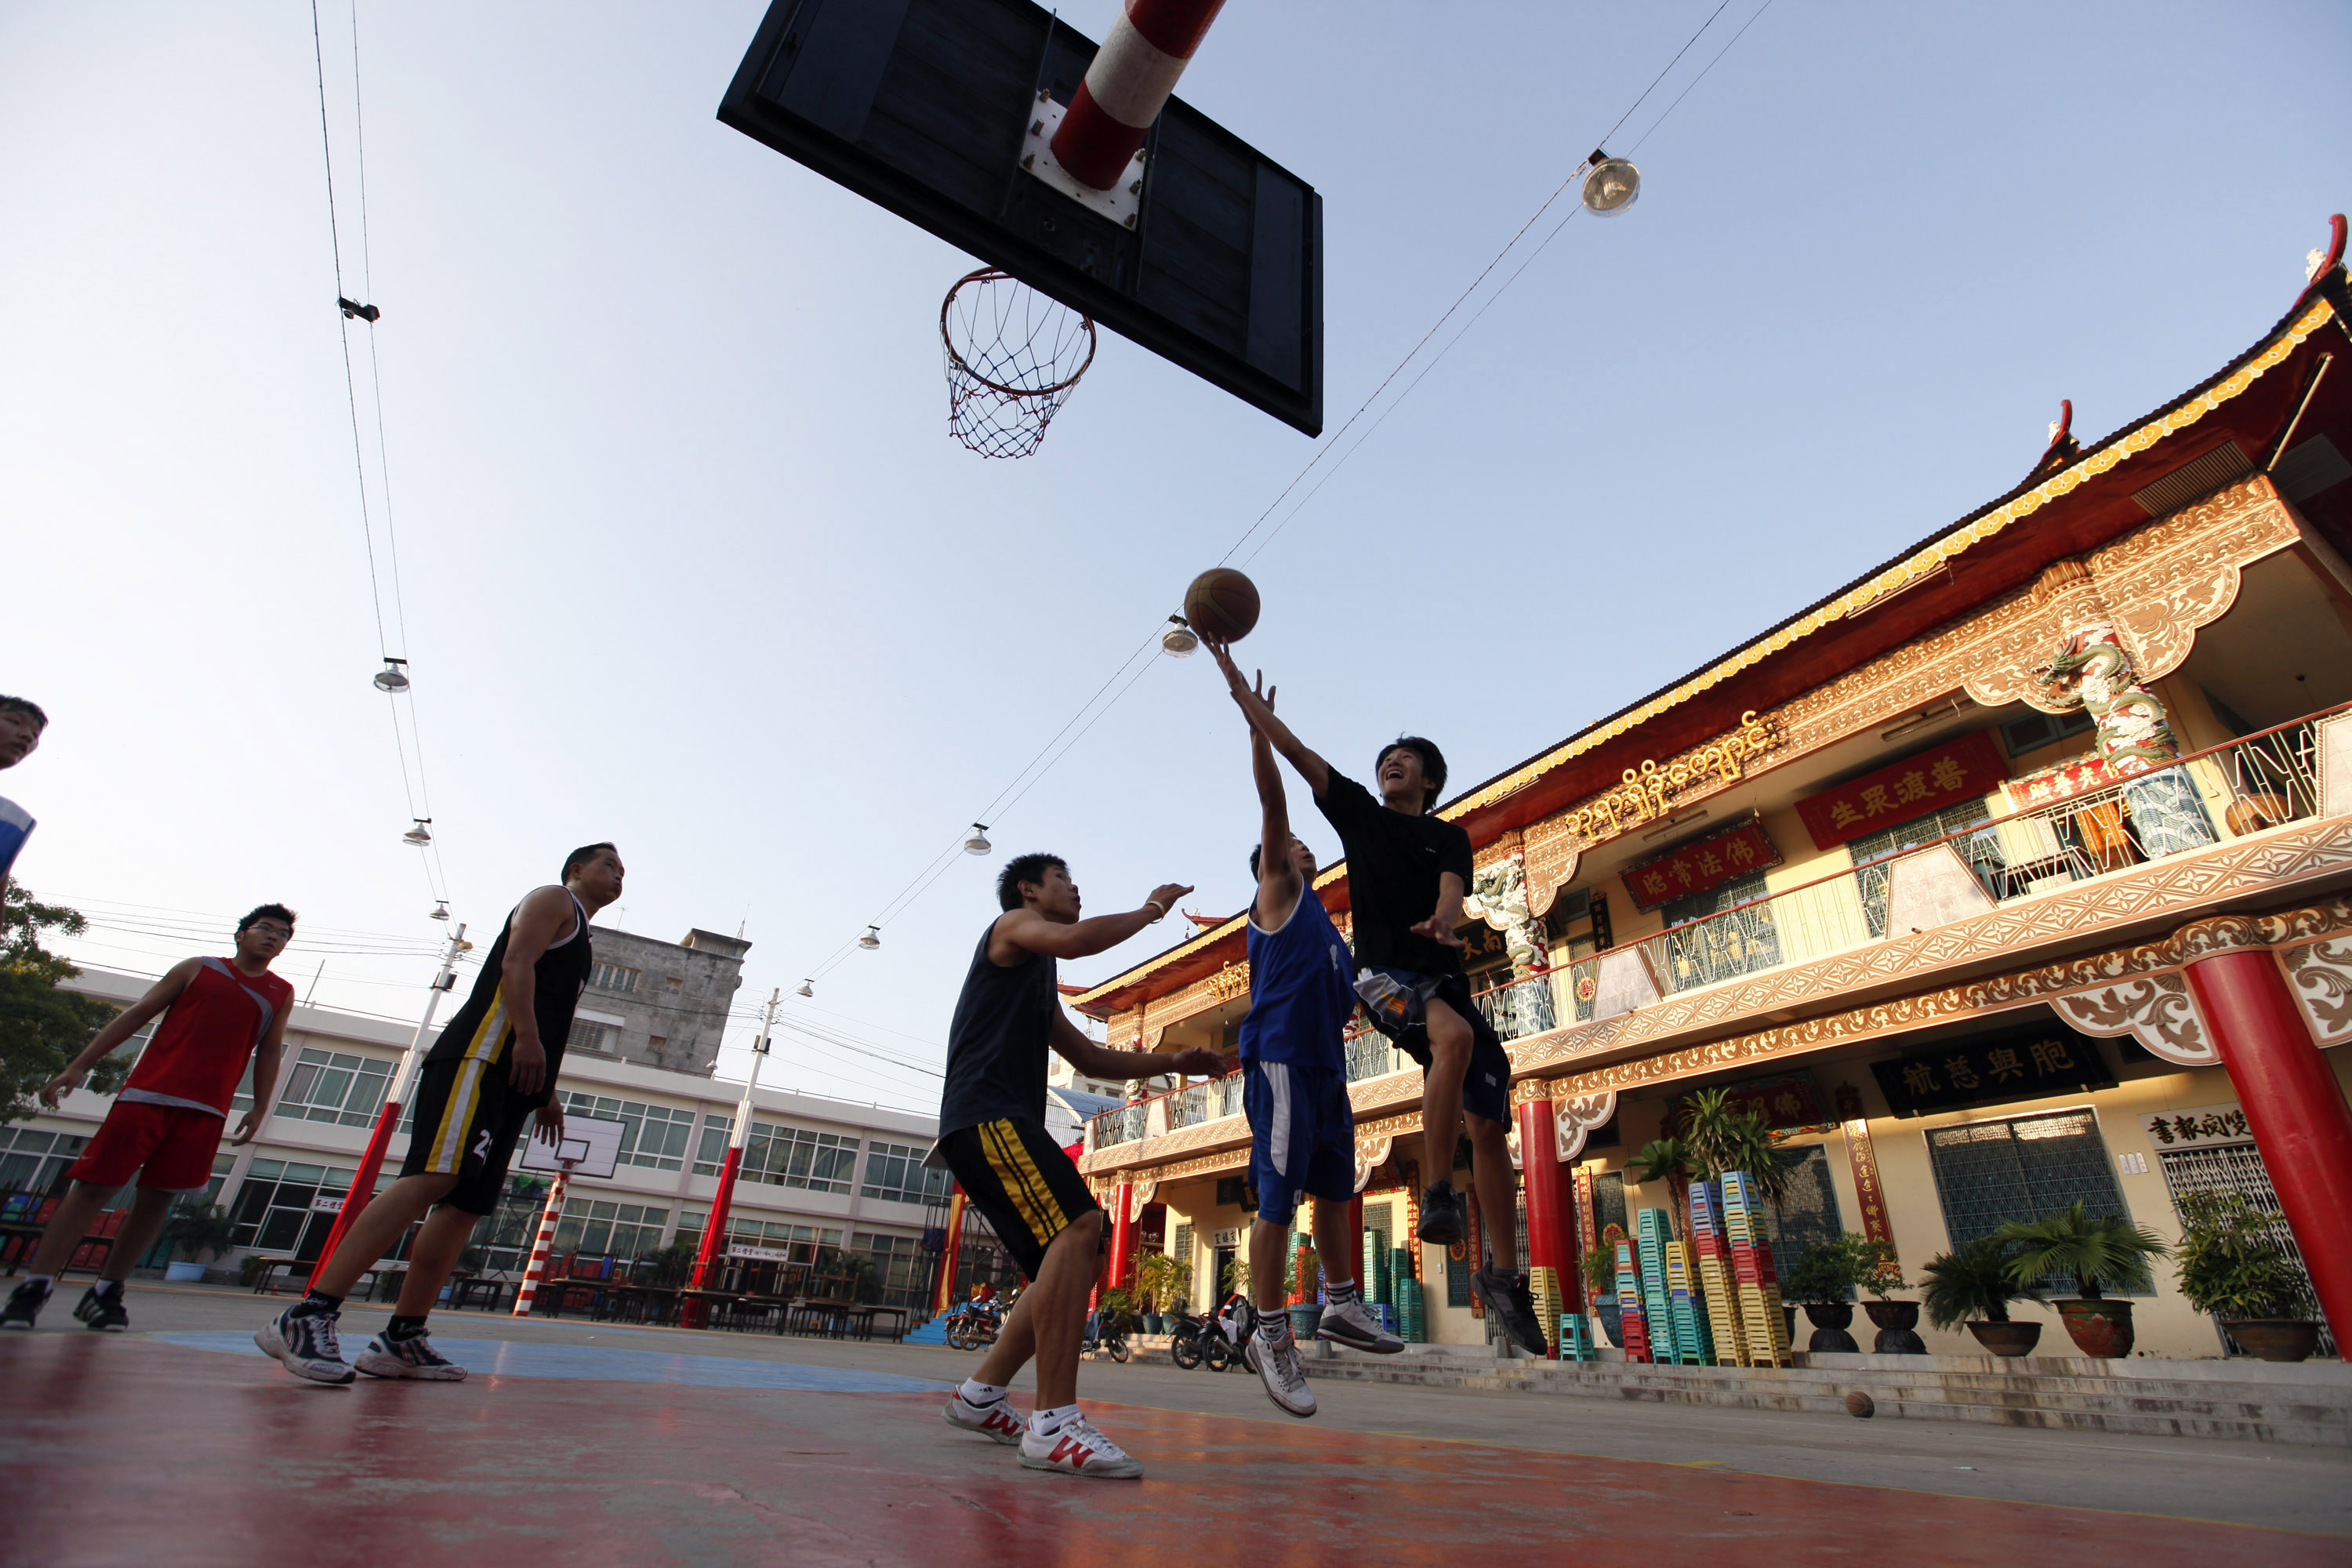 Chinese men play basketball at a Chinese communal temple in Mandalay